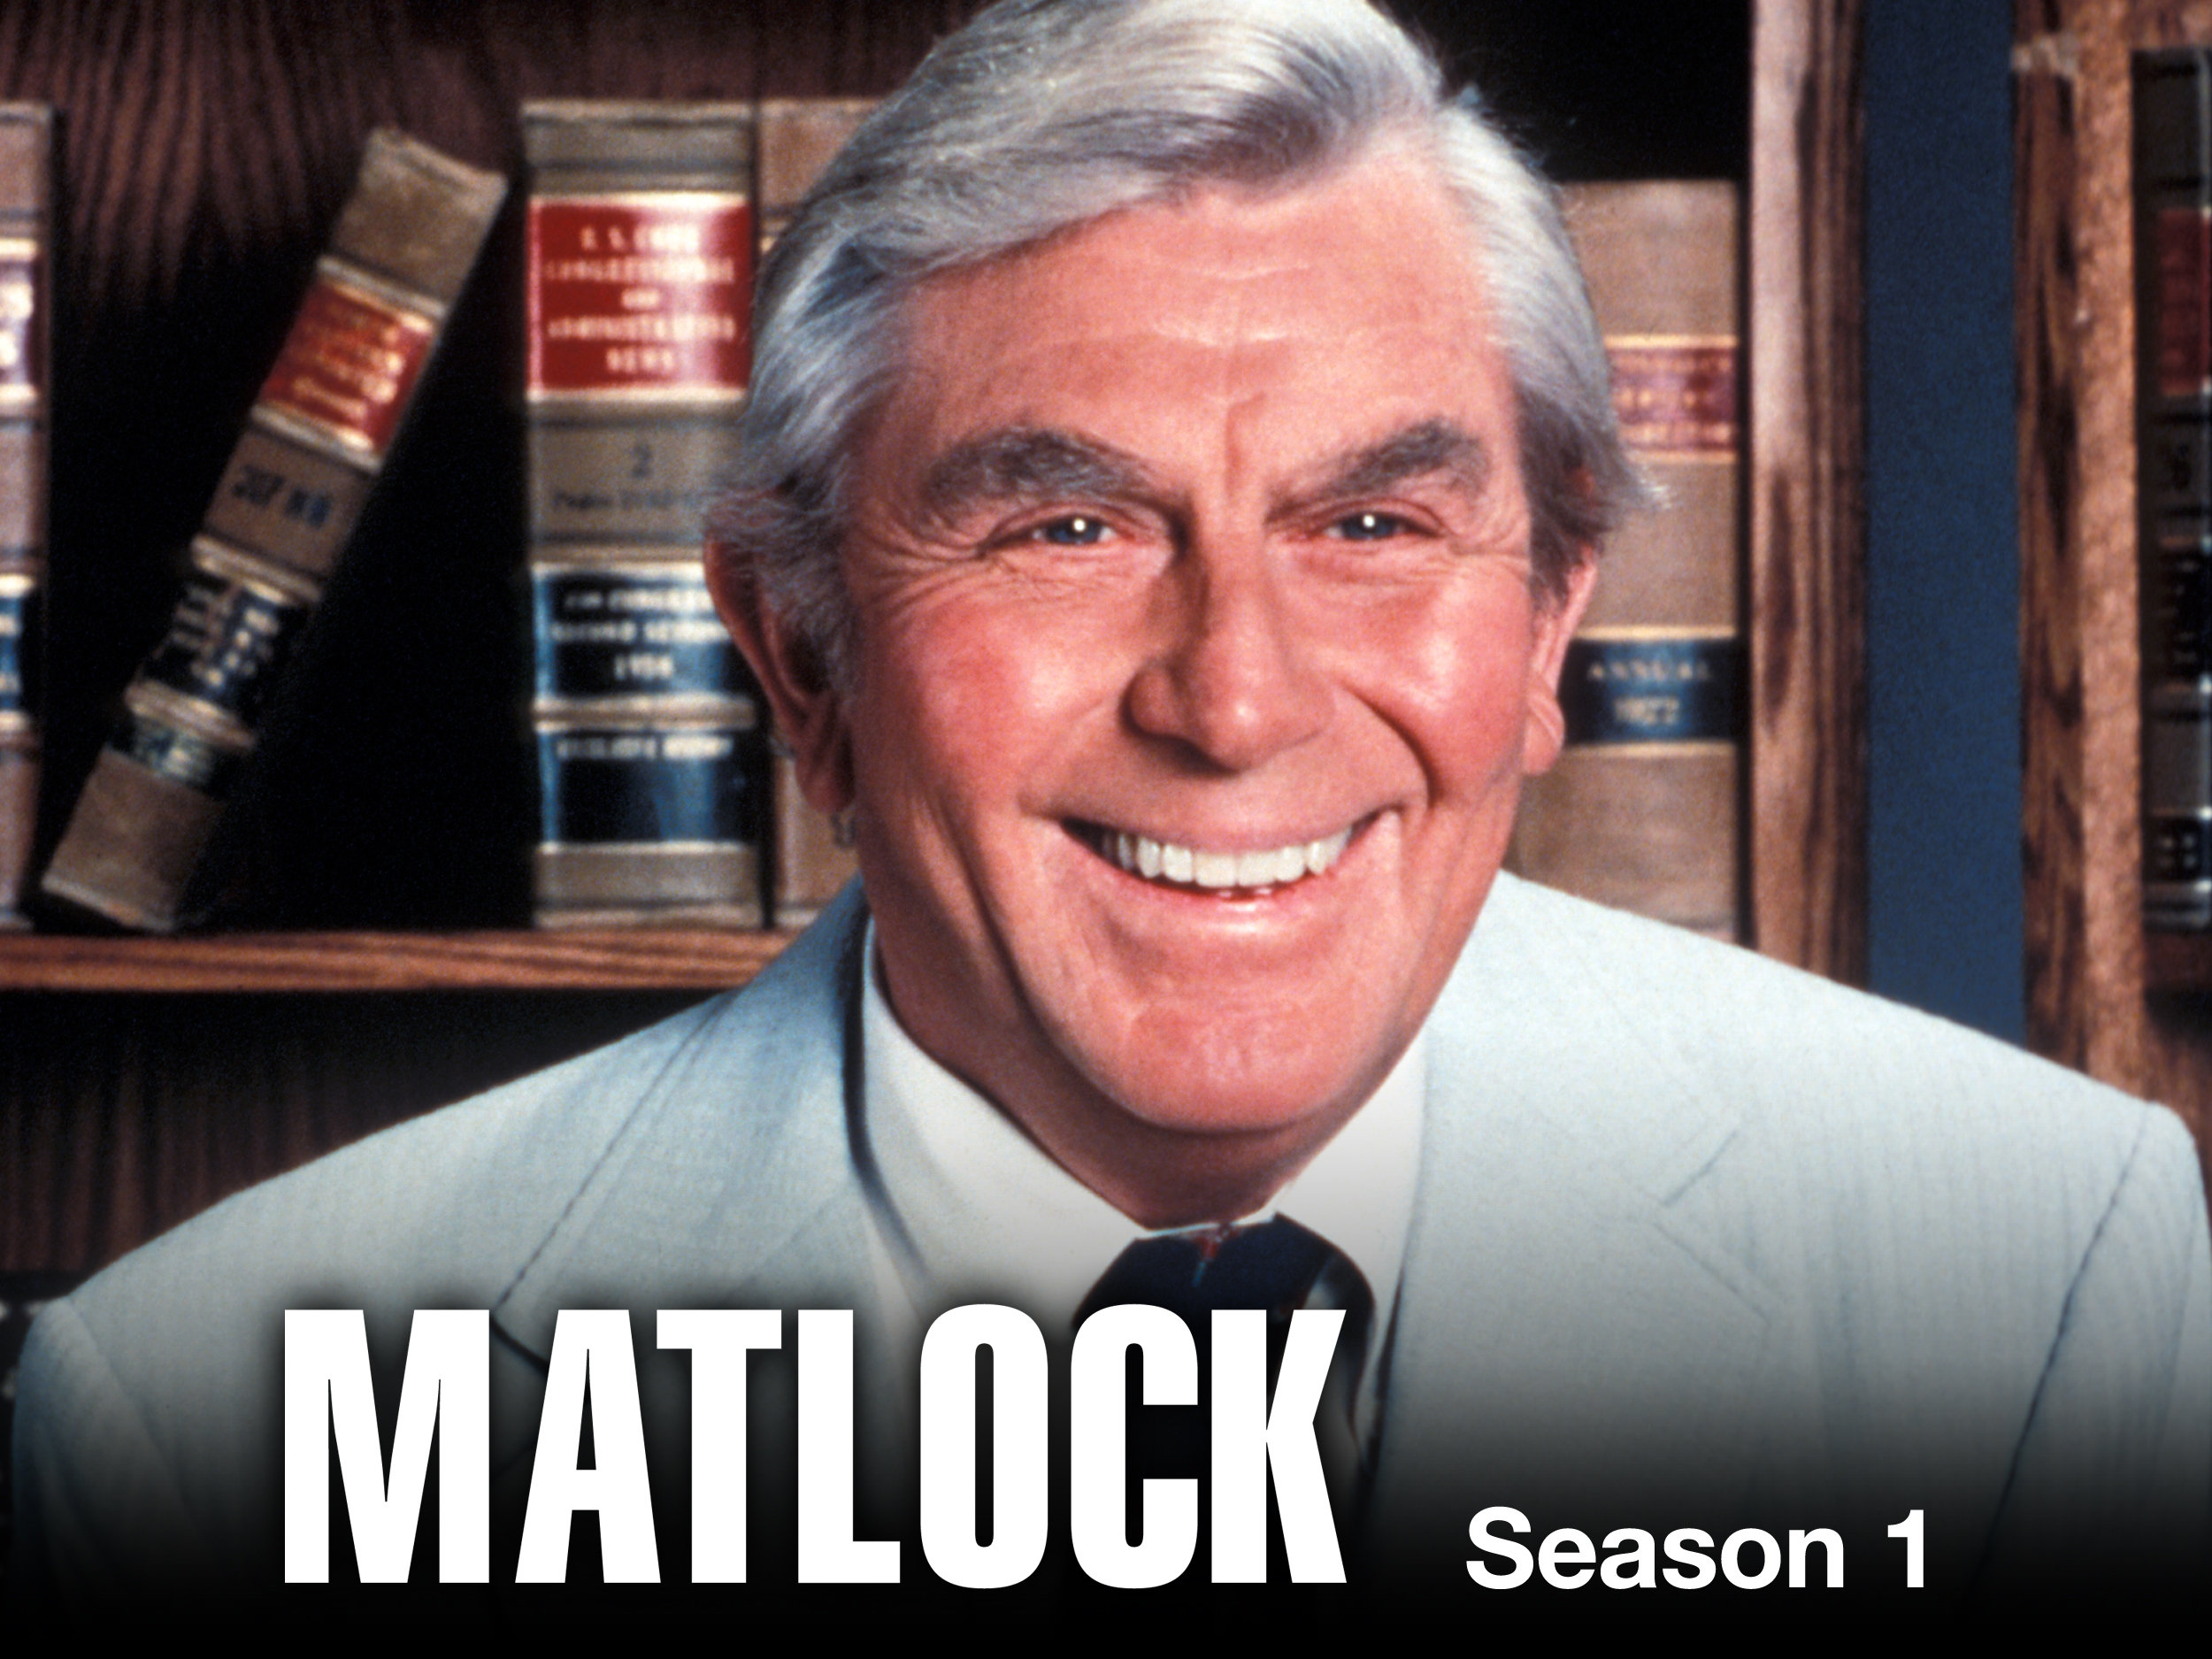 Matlock tv guide ad sitcoms online photo galleries.